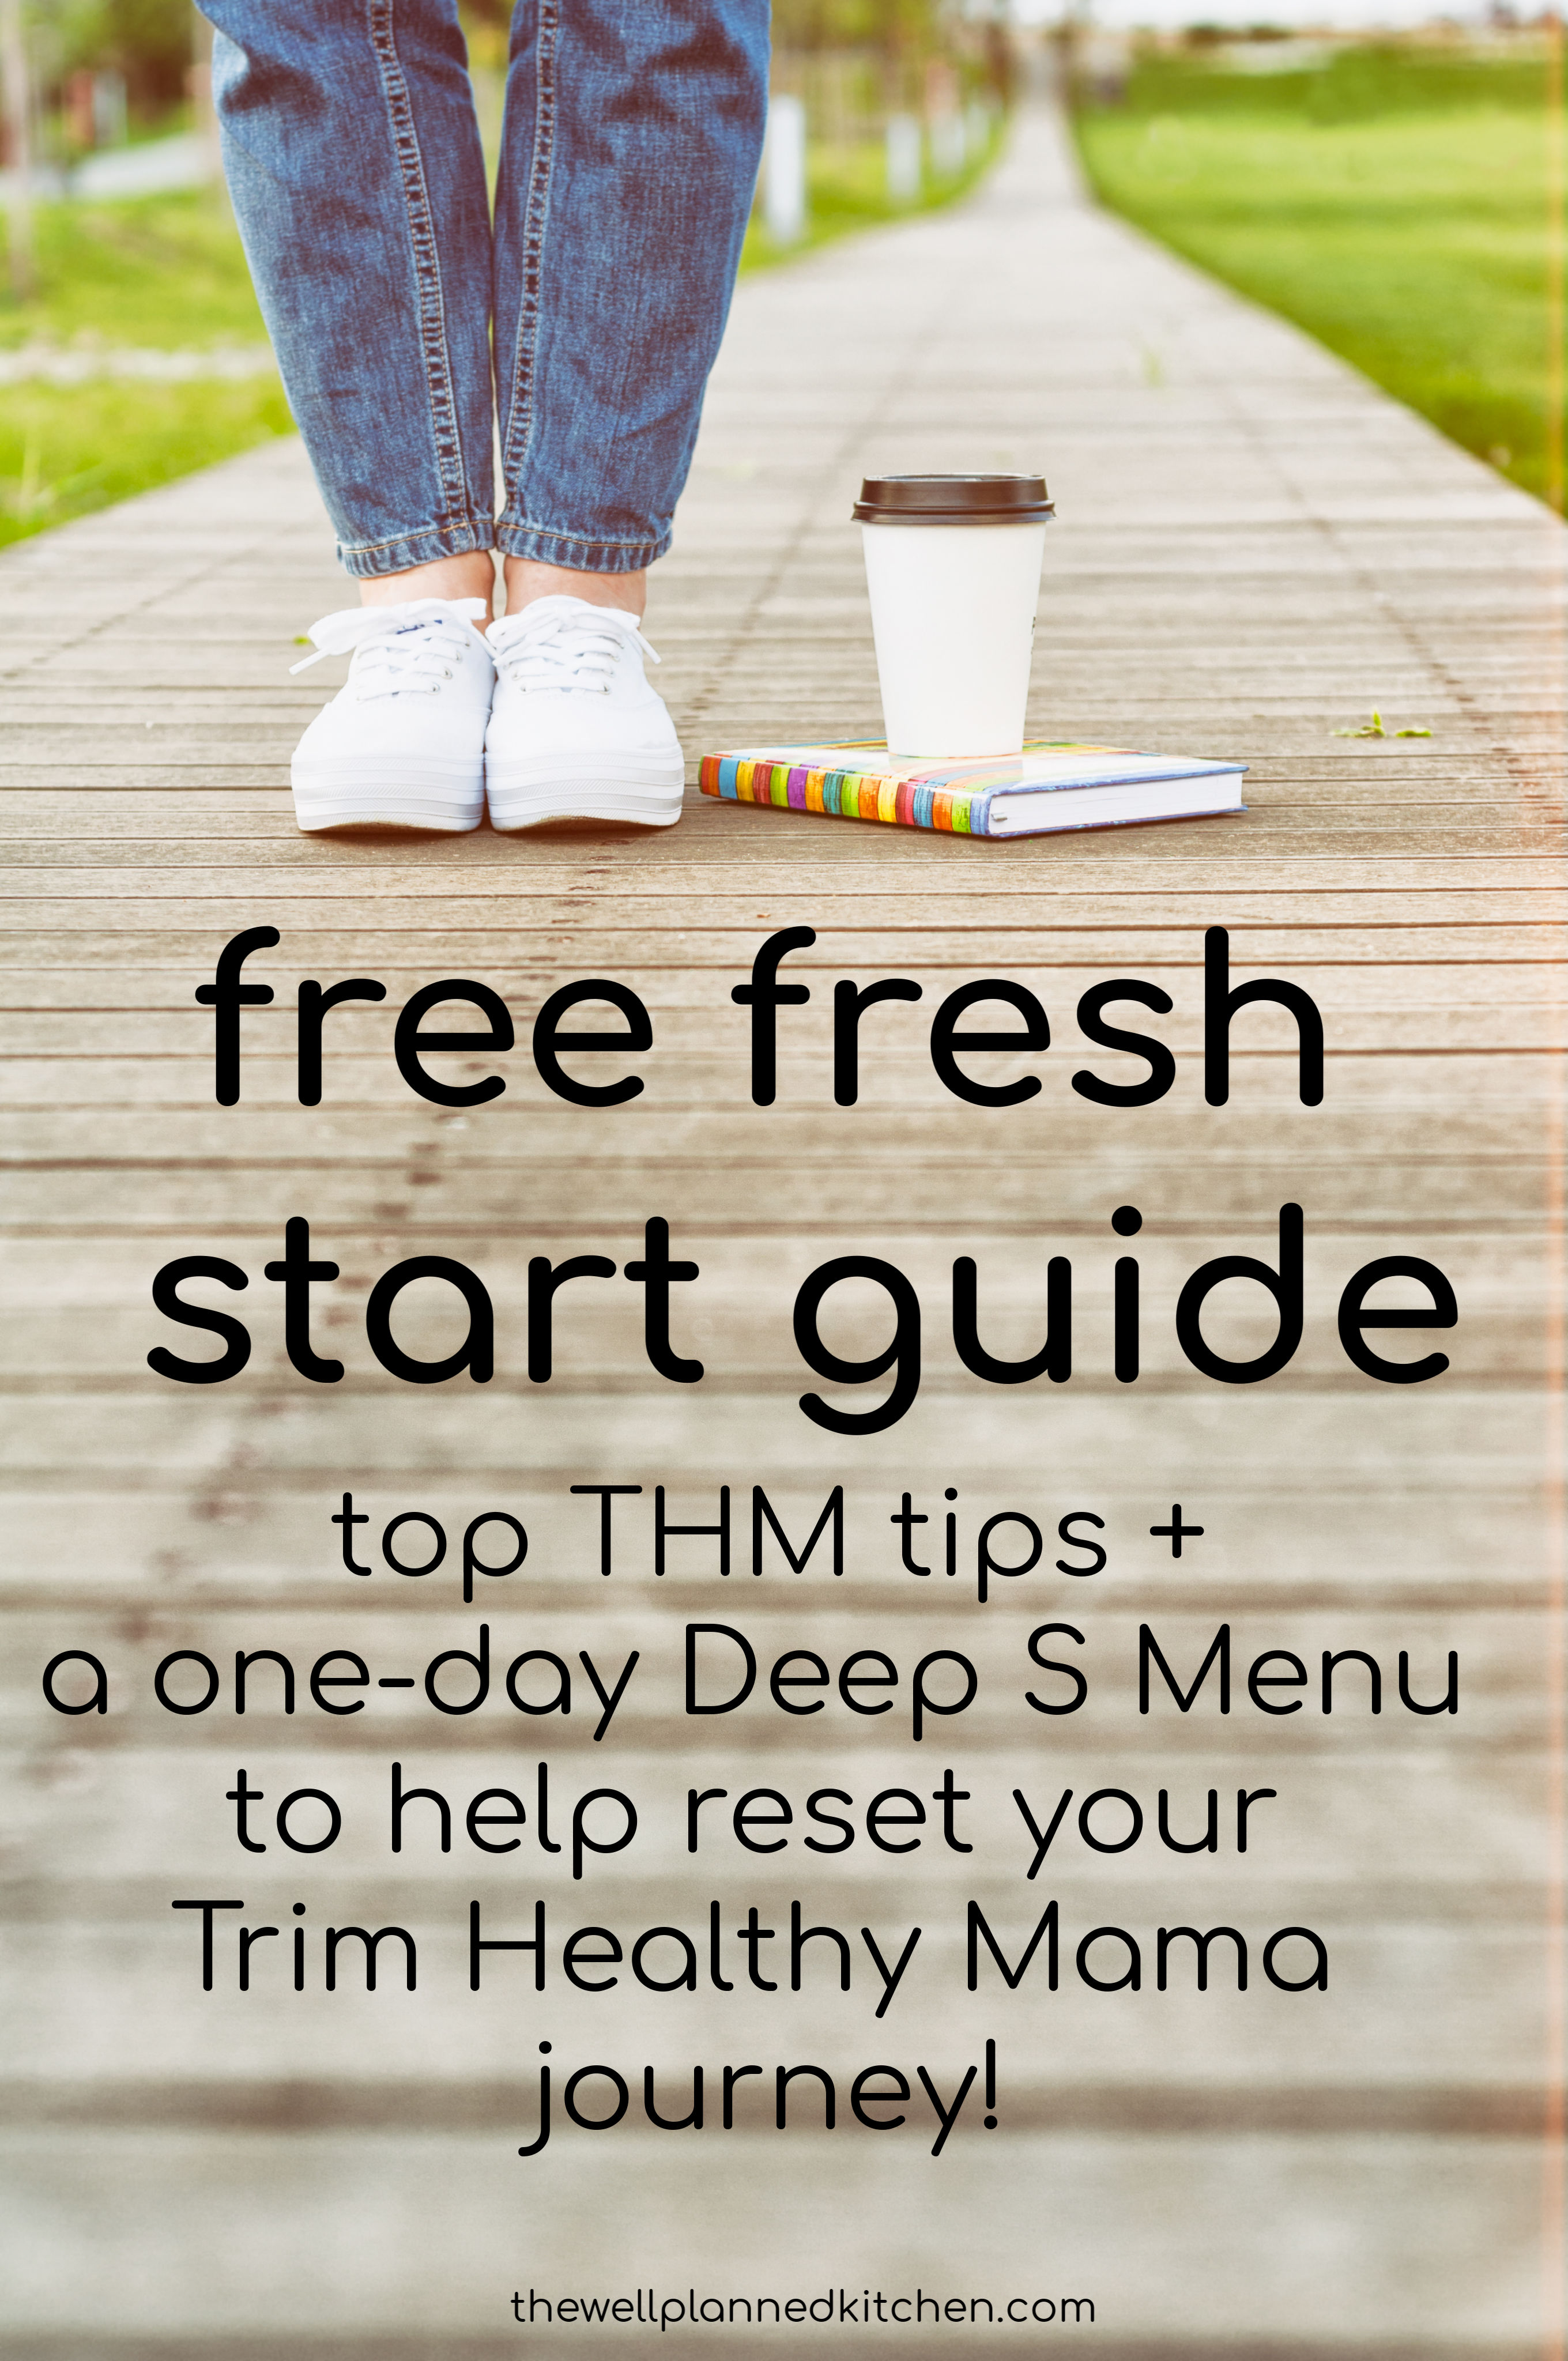 Free Fresh Start Guide for Trim Healthy Mamas